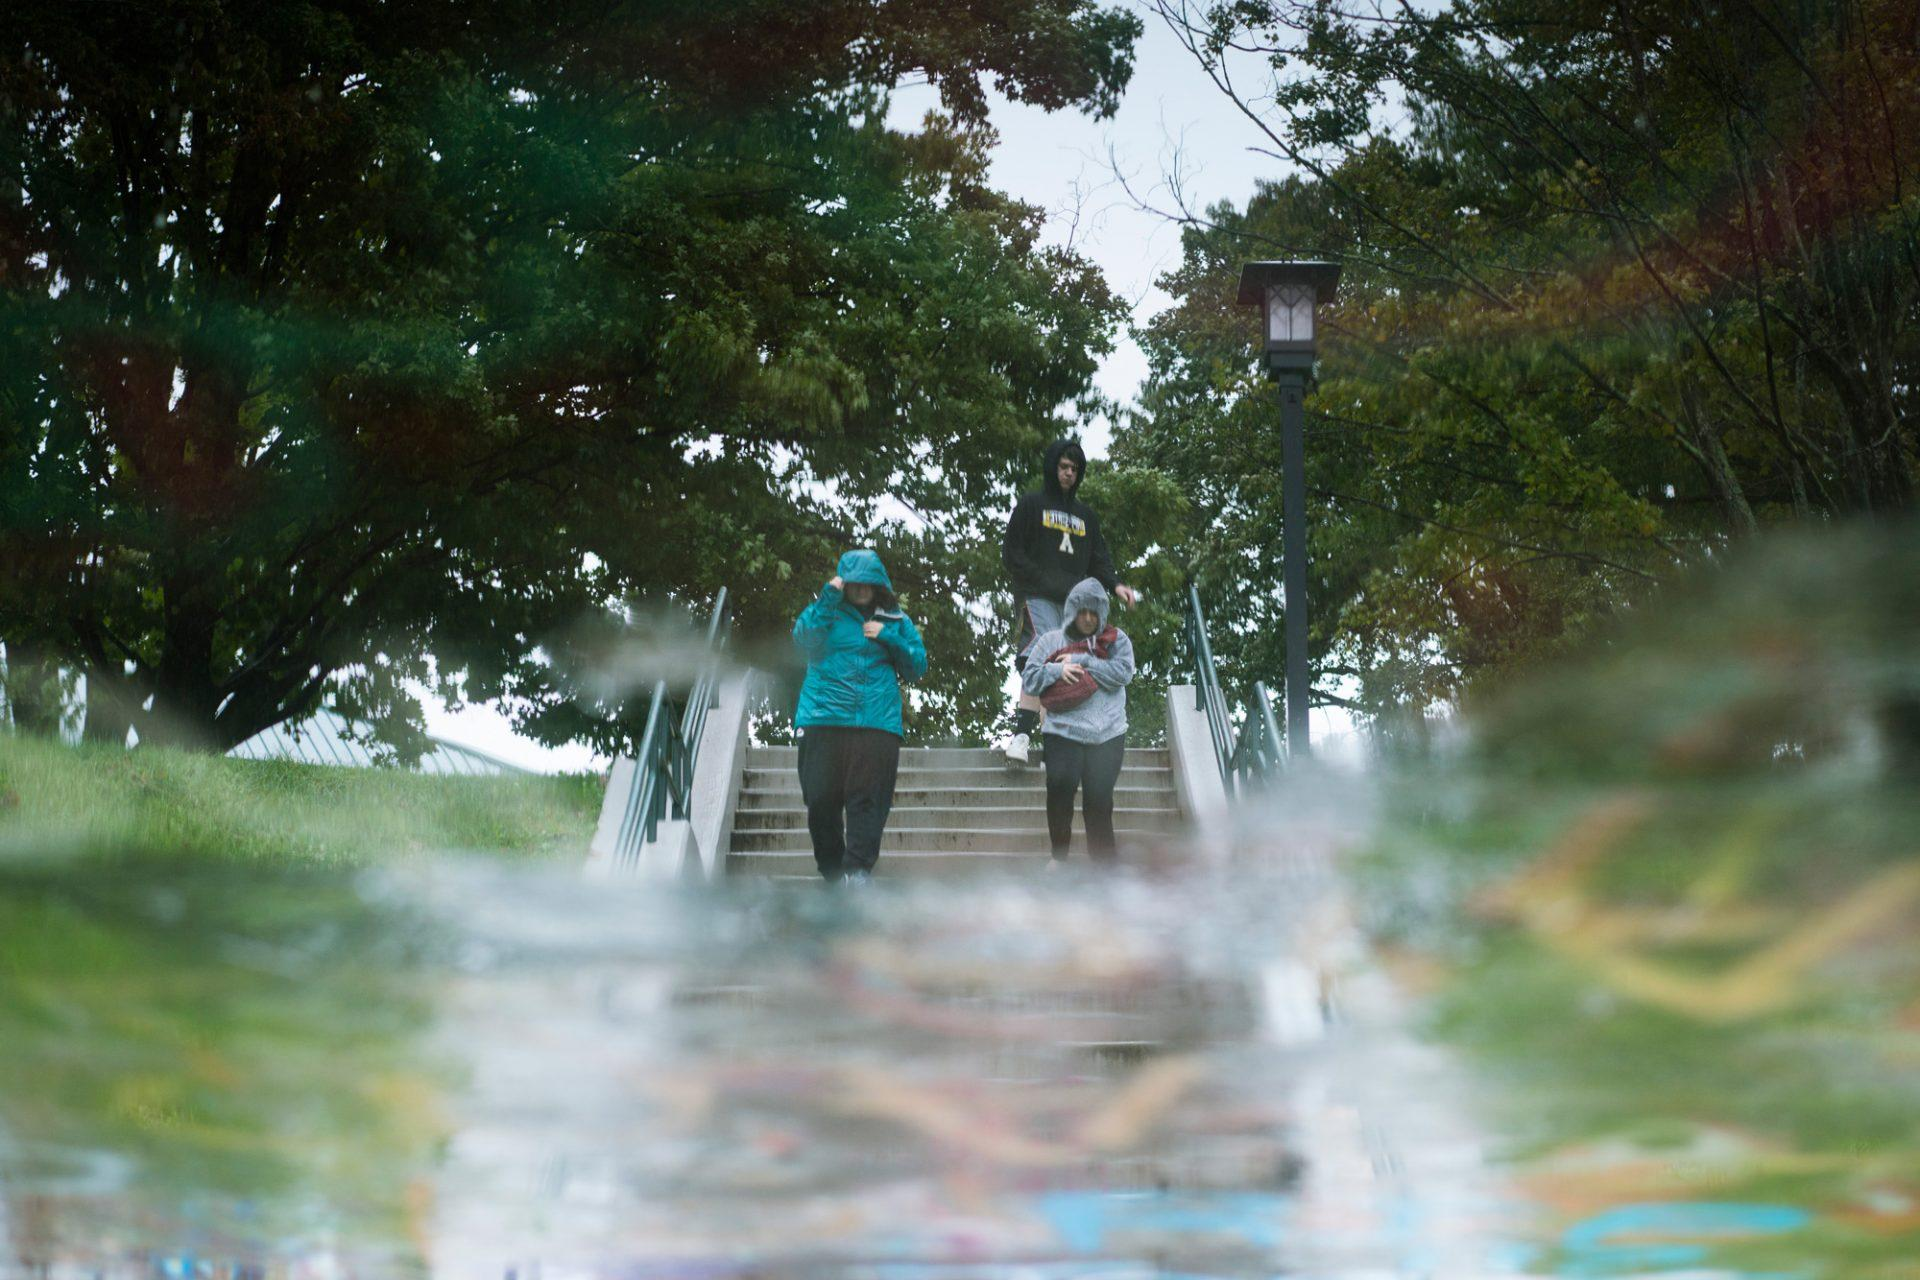 Students run from West campus to East campus despite the wind and rain.